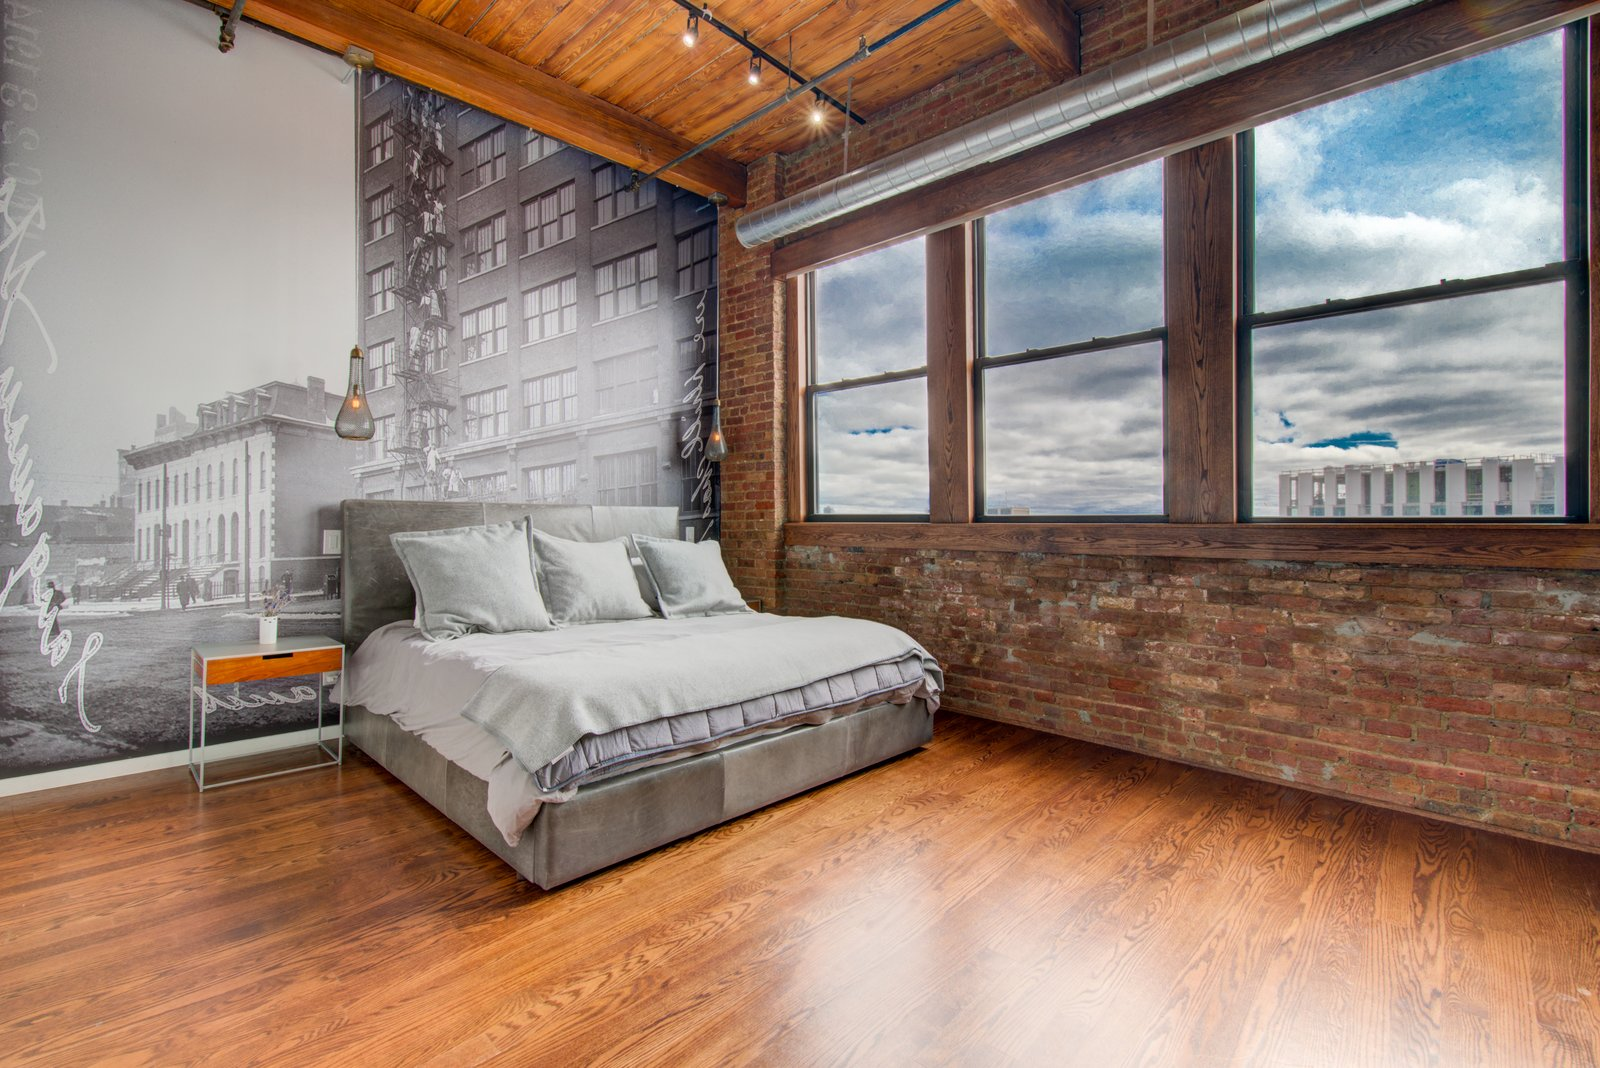 Bedroom, Track Lighting, Night Stands, Bed, Medium Hardwood Floor, and Ceiling Lighting  Penthouse That Starred on NBC's 'Chicago Fire' Asks $1.775M